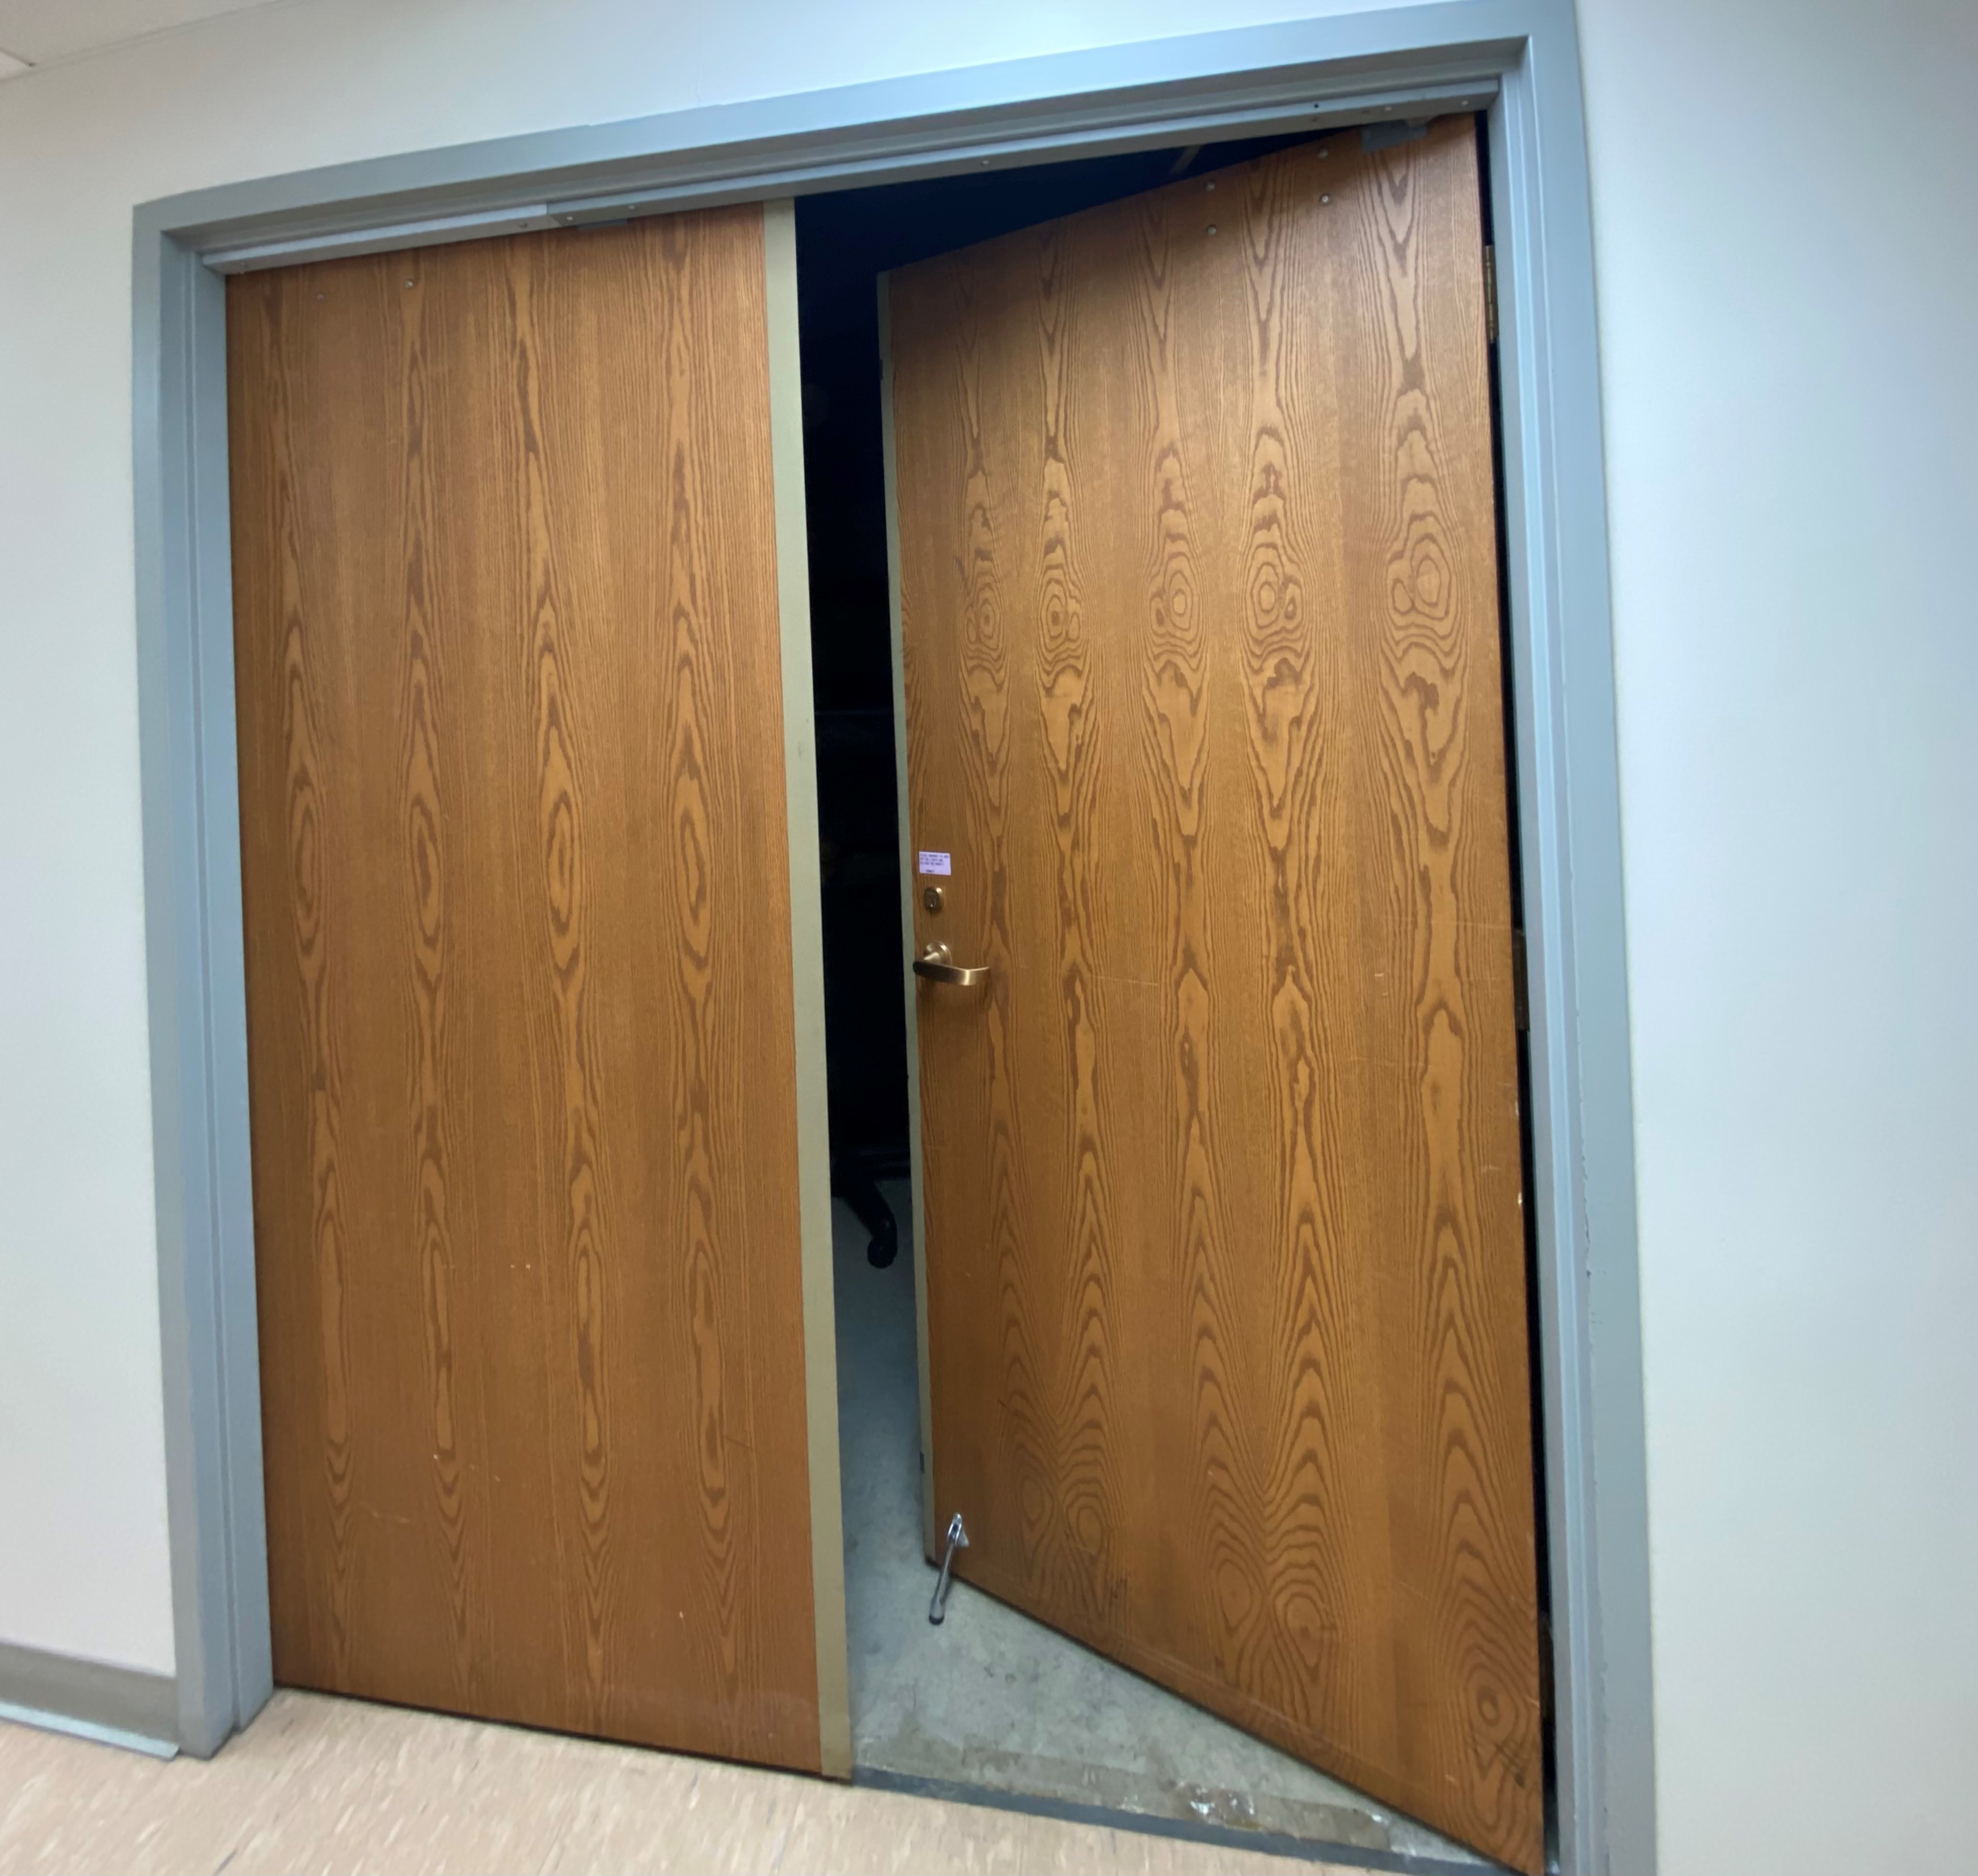 photo of doors to the archives